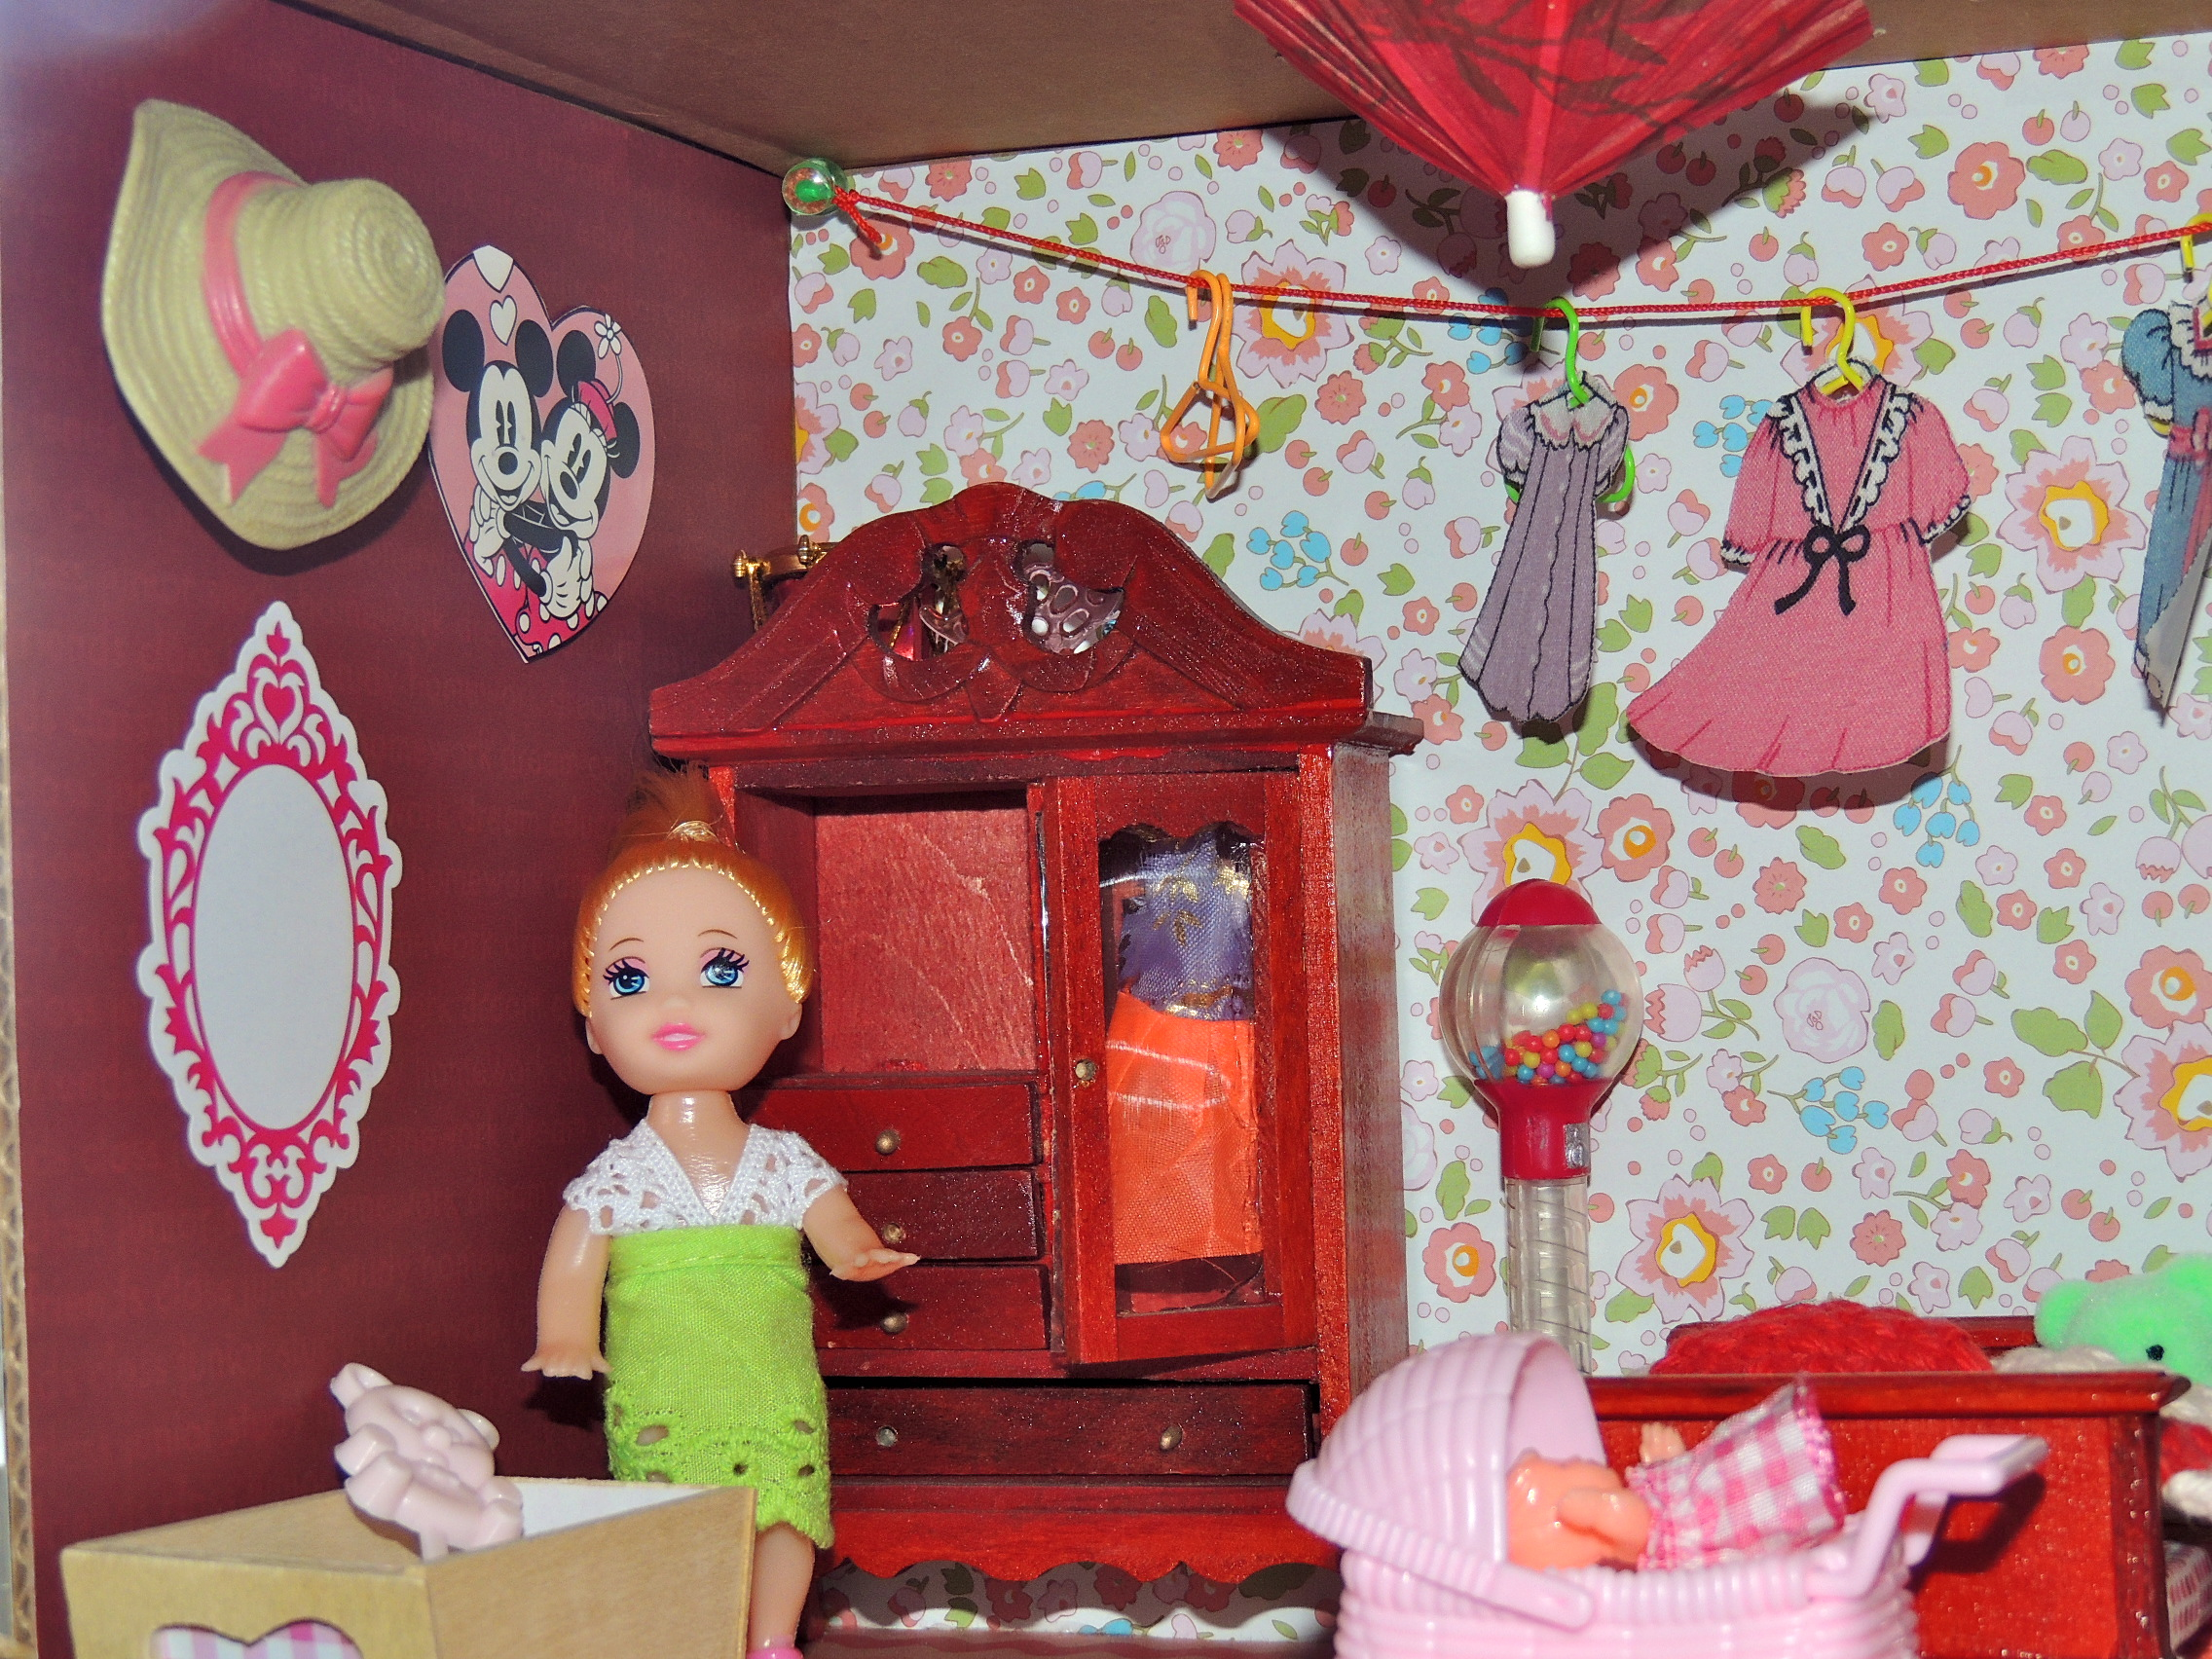 Scrapbook paper dollhouse wallpaper - I Used Scrapbook Paper And Wrapping Paper For The Wallpapers And Floors I Love The Little Hat That Was On Some Clearance Cupcakes At Our Grocery Store A